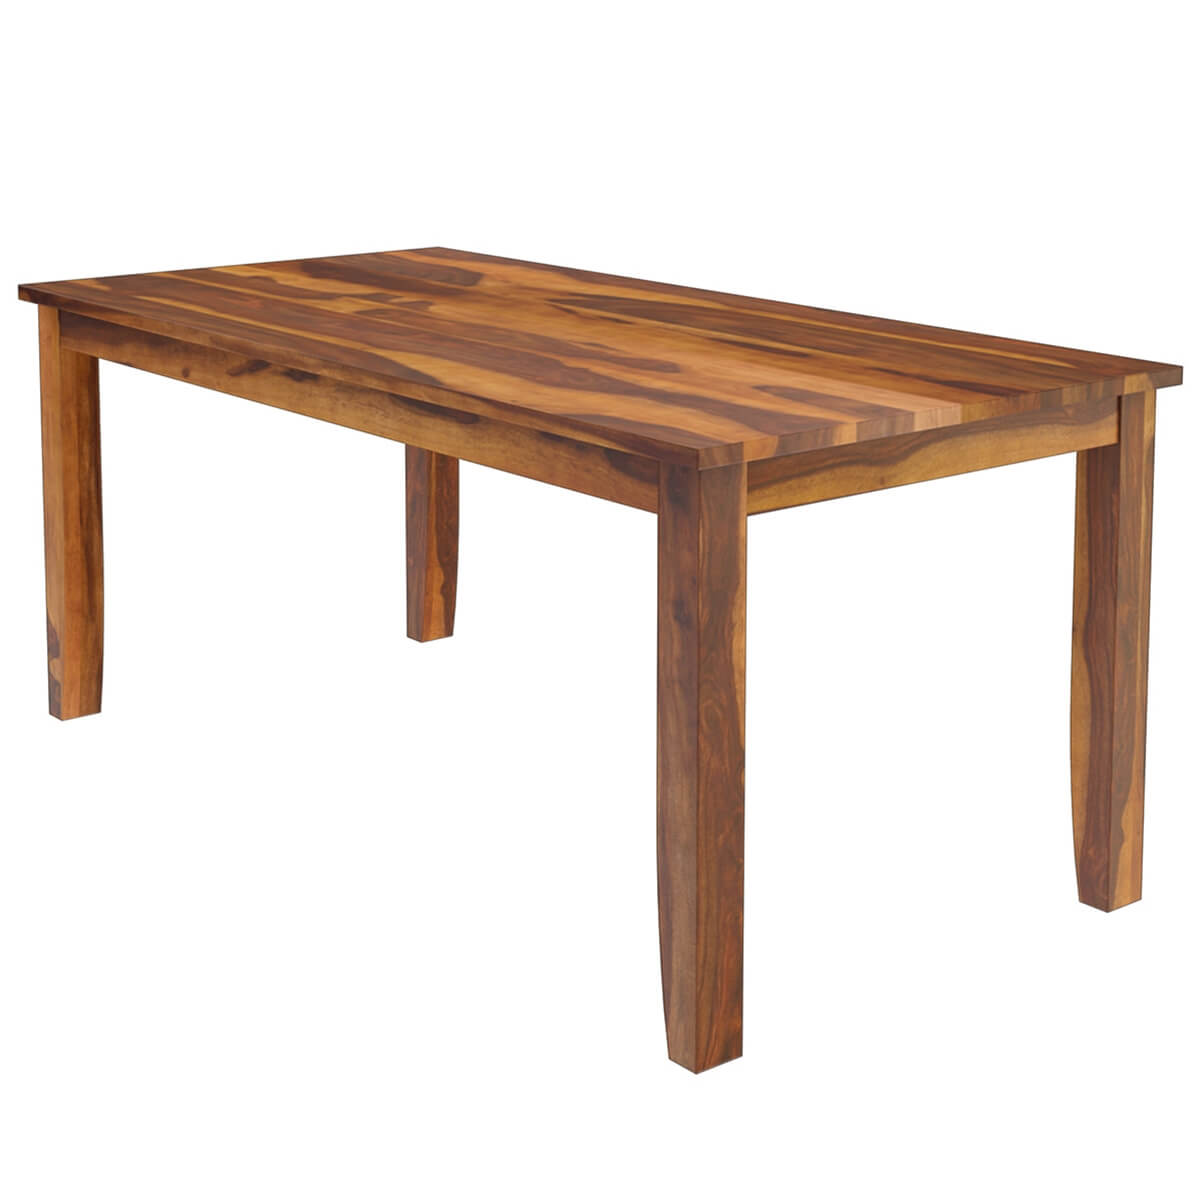 Cariboo contemporary tapered legs solid wood dining table for Solid wood dining table